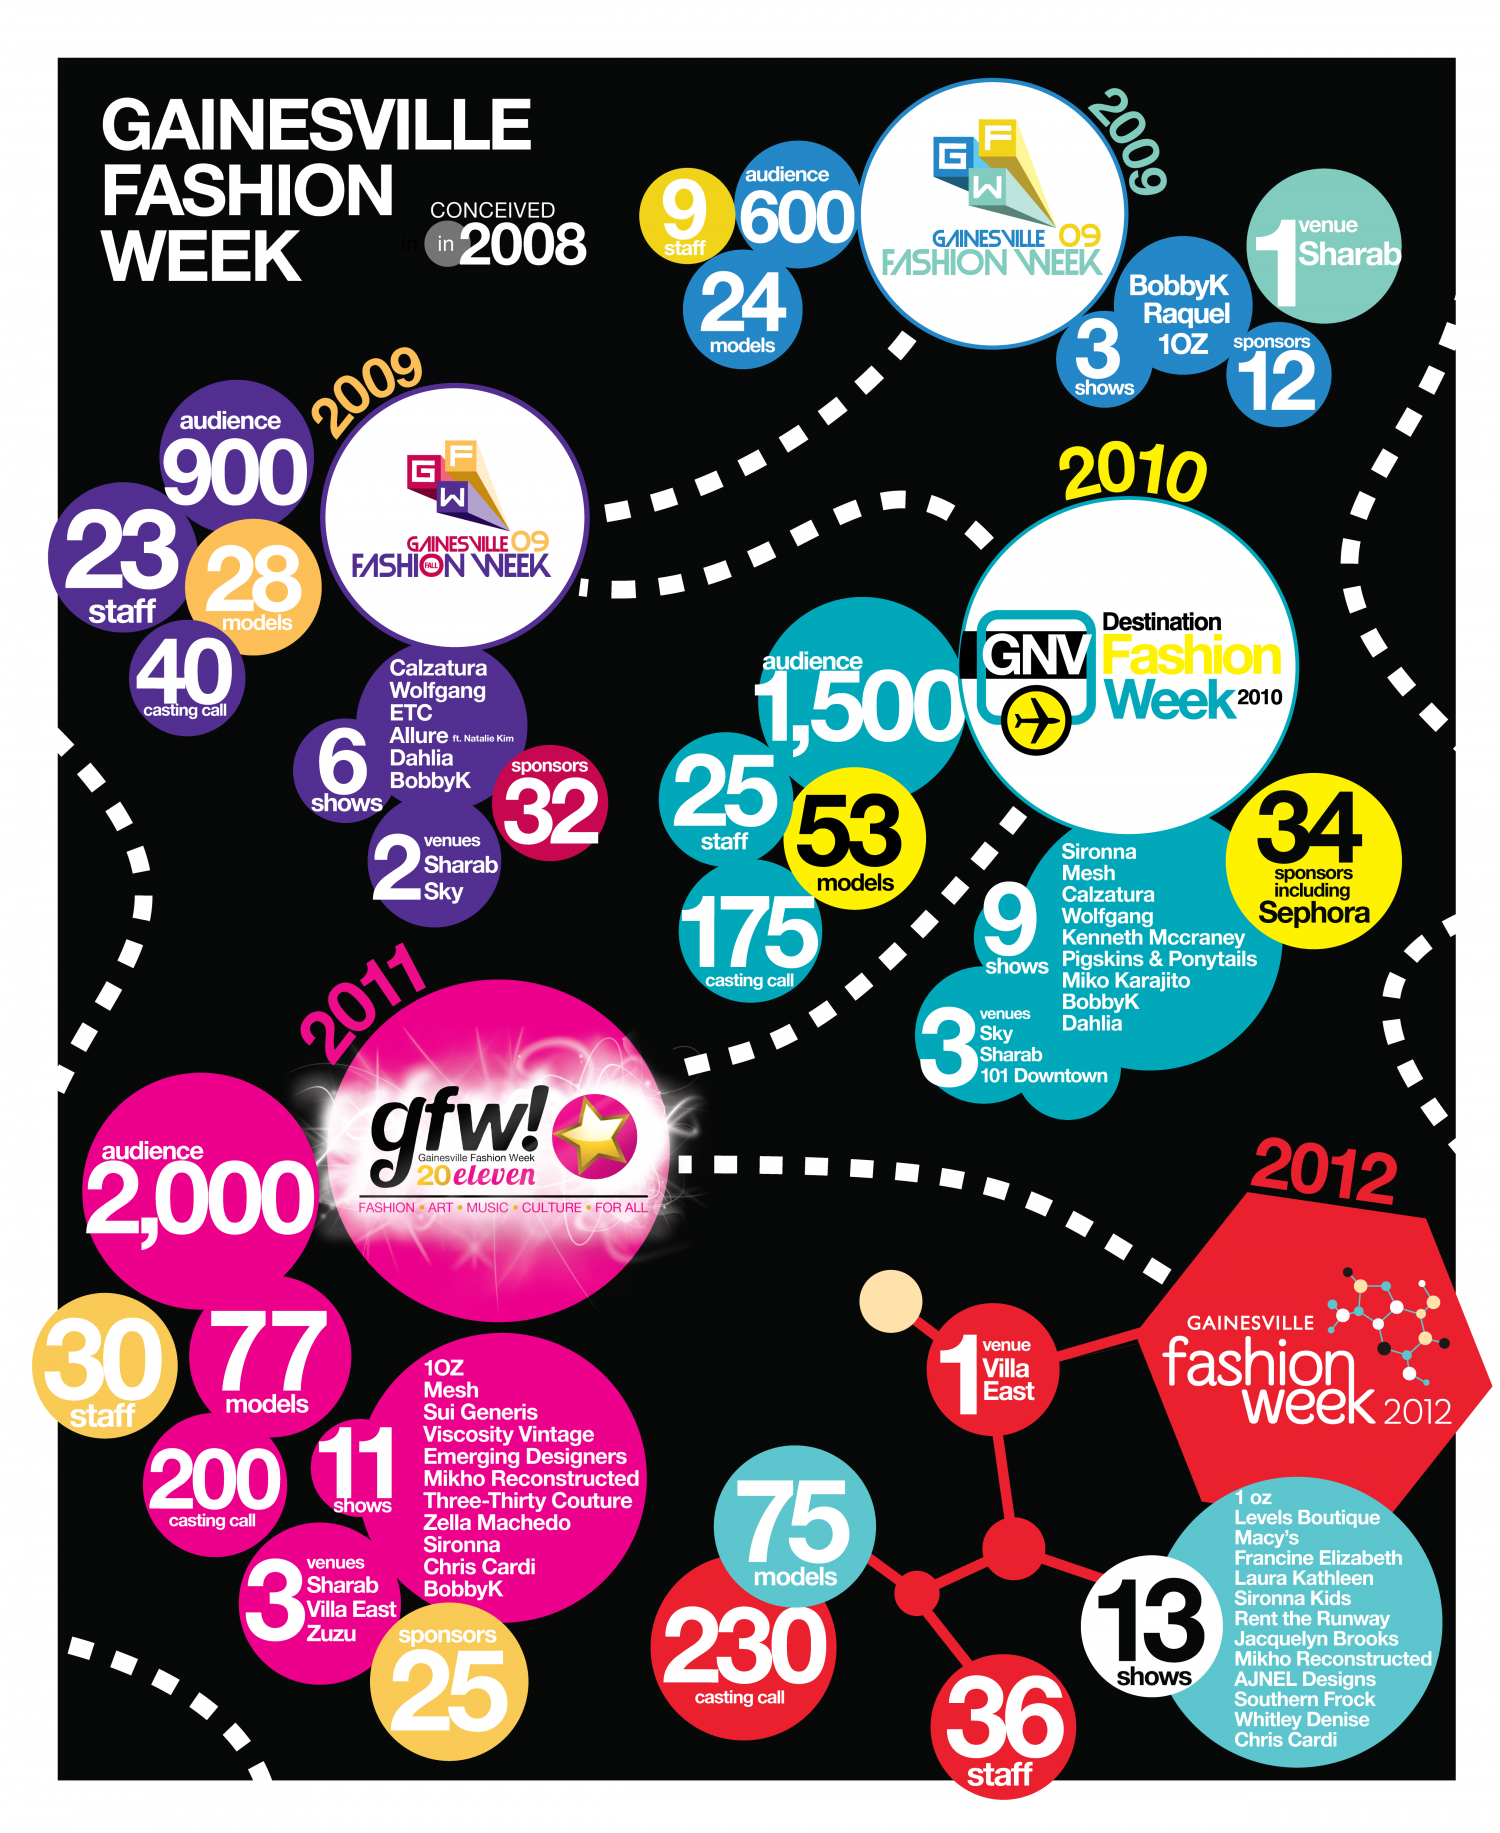 A History of Gainesville Fashion Week Infographic